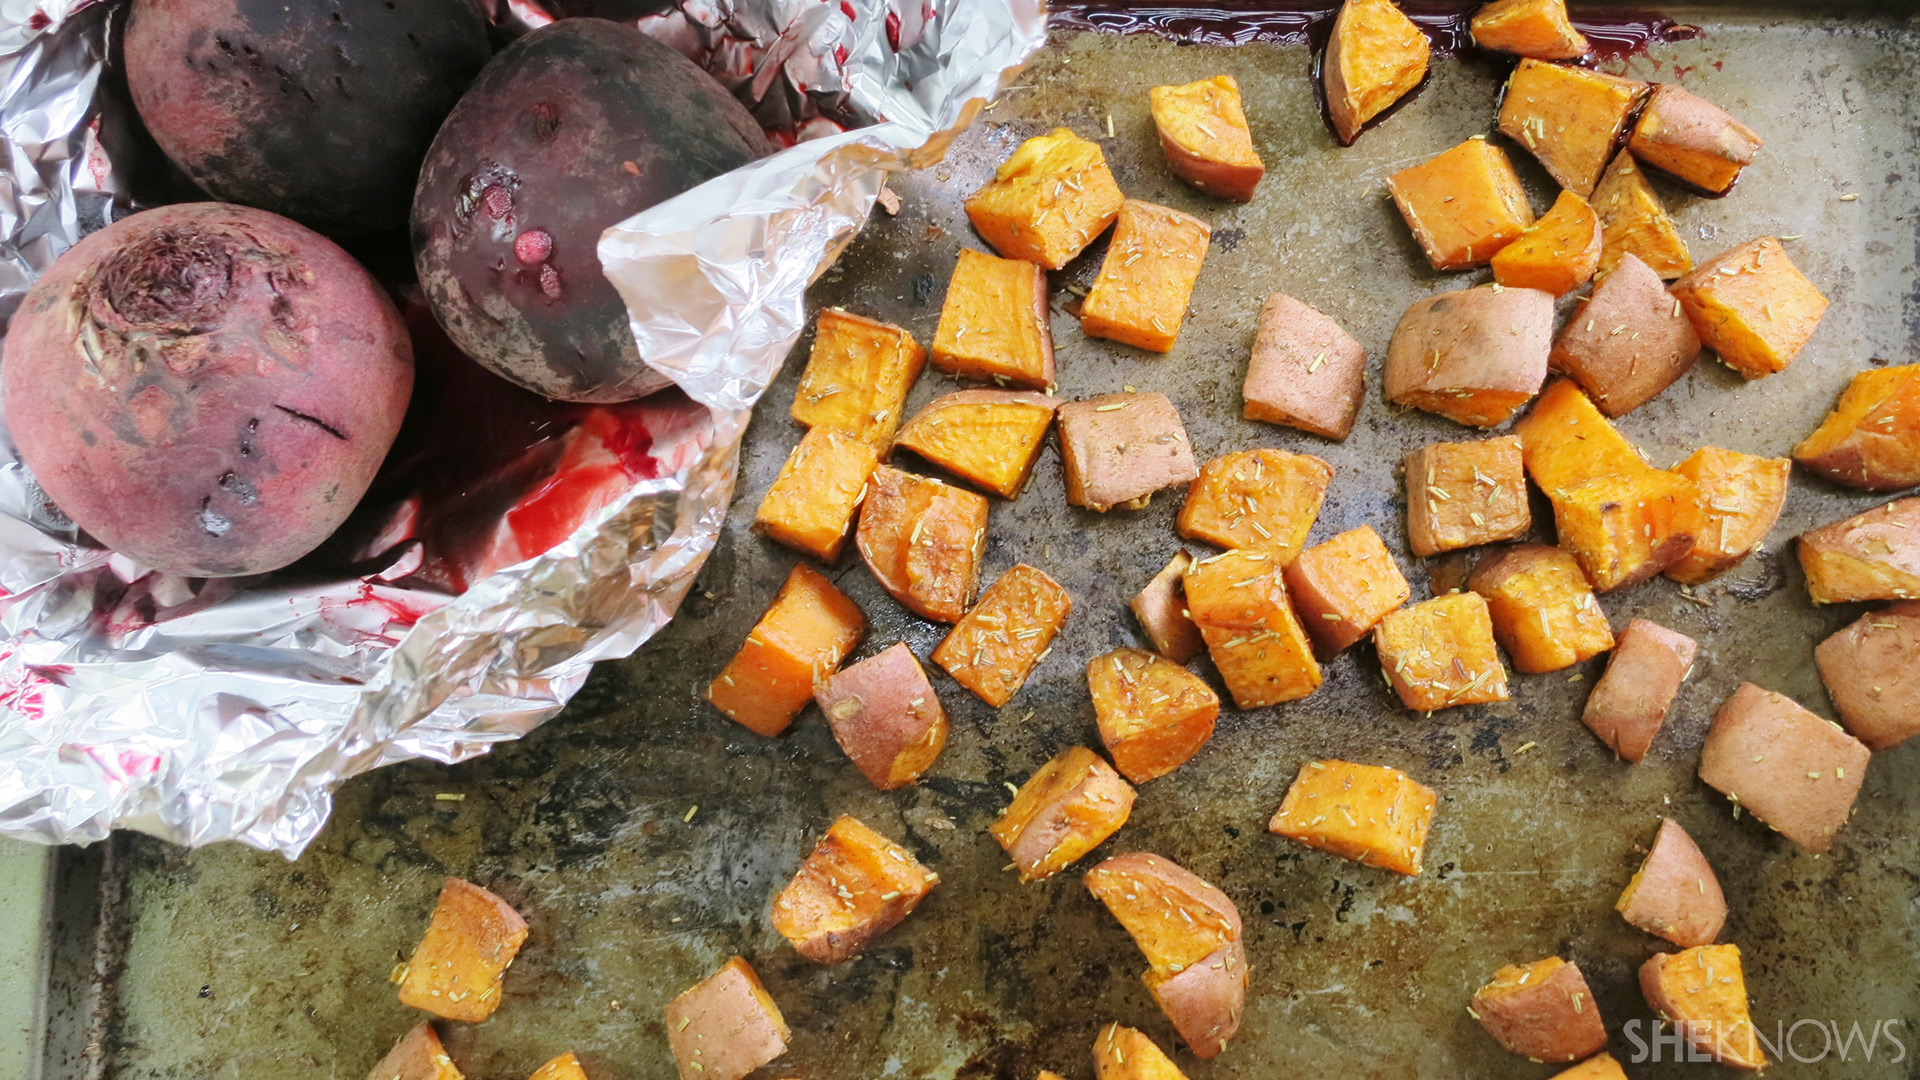 Sweet potato and beet sald | Sheknows.ca - beets and sweet potatoes after cooking